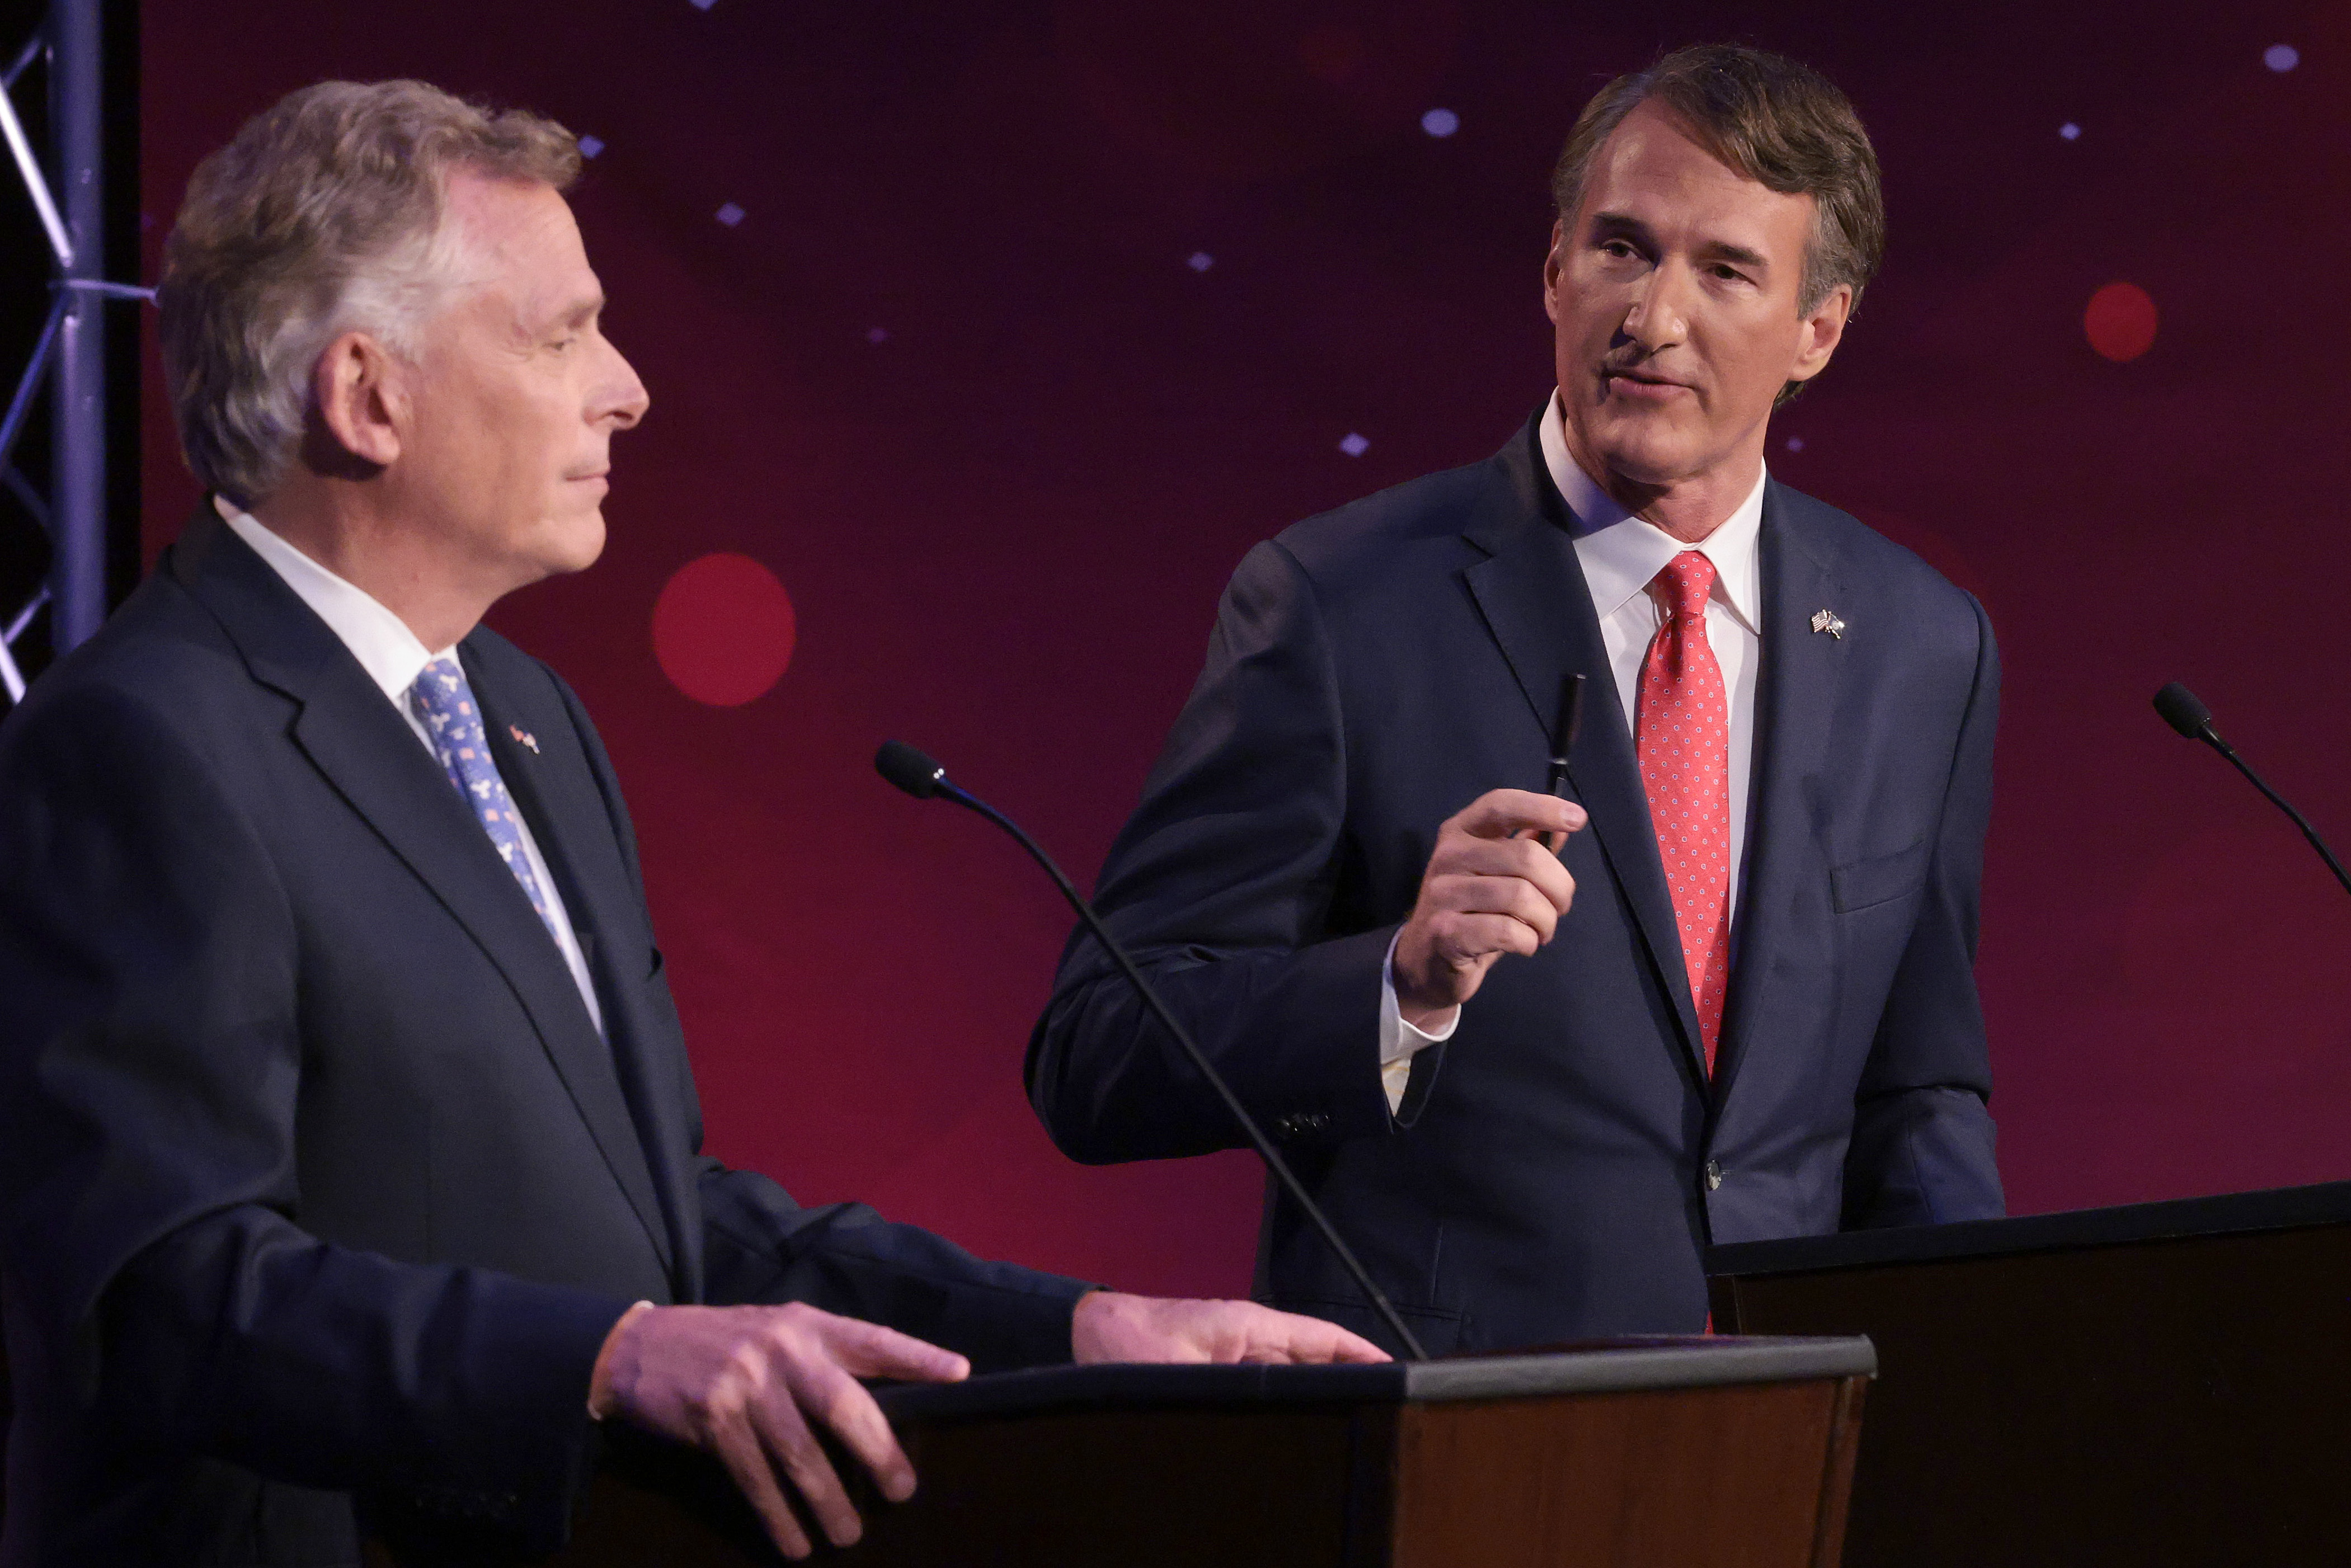 Former Virginia Gov. Terry McAuliffe (left) (D-Va.) and Republican gubernatorial candidate Glenn Youngkin (right) particpate in a debate hosted by the Northern Virginia Chamber of Commerce in Alexandria, Virginia. The gubernatorial election is November 2. (Photo by Win McNamee/Getty Images)